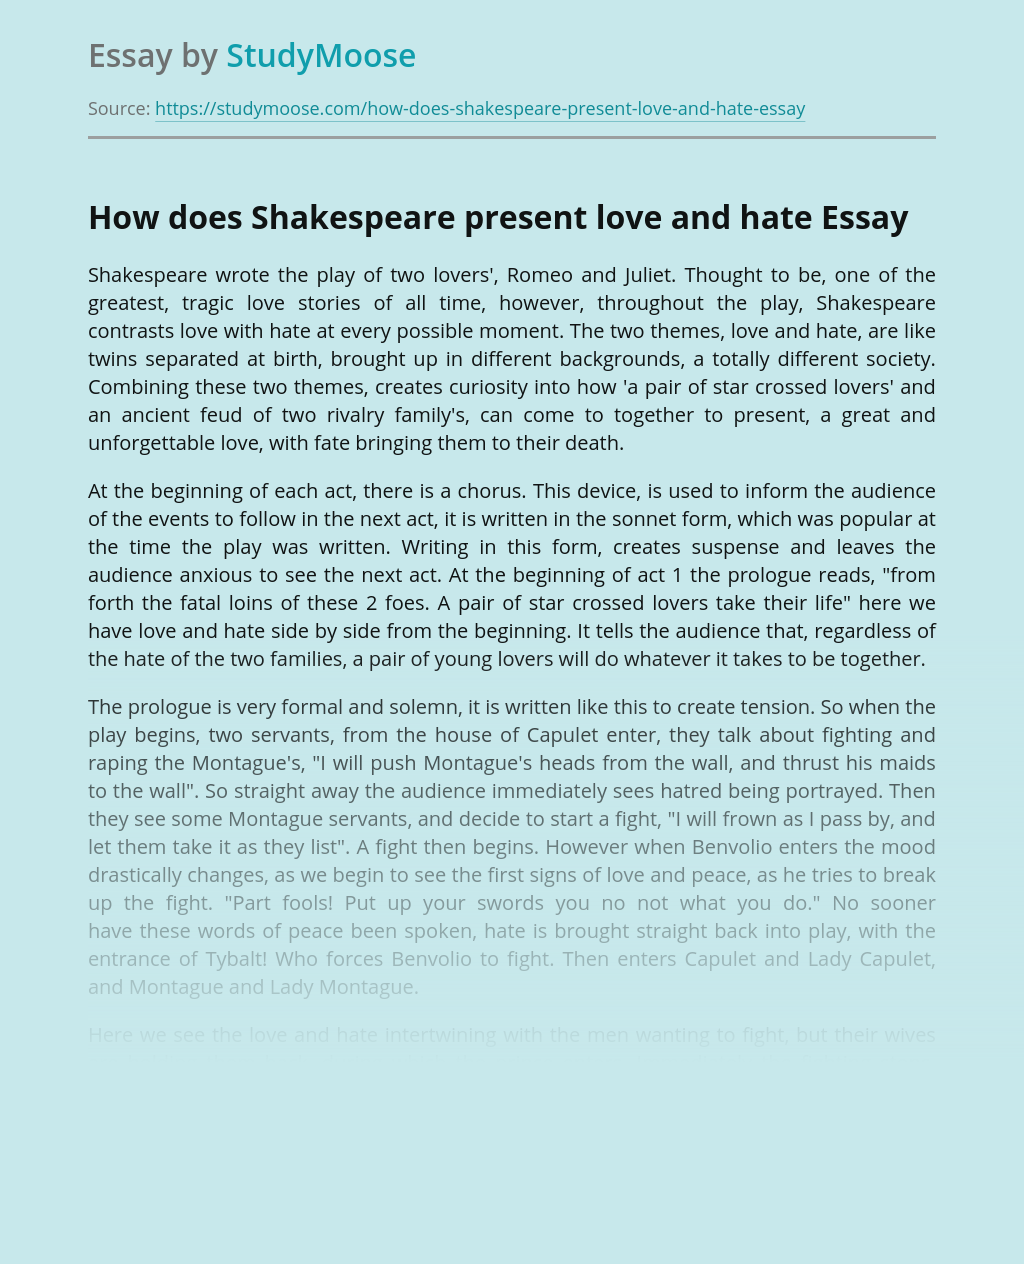 How does Shakespeare present love and hate